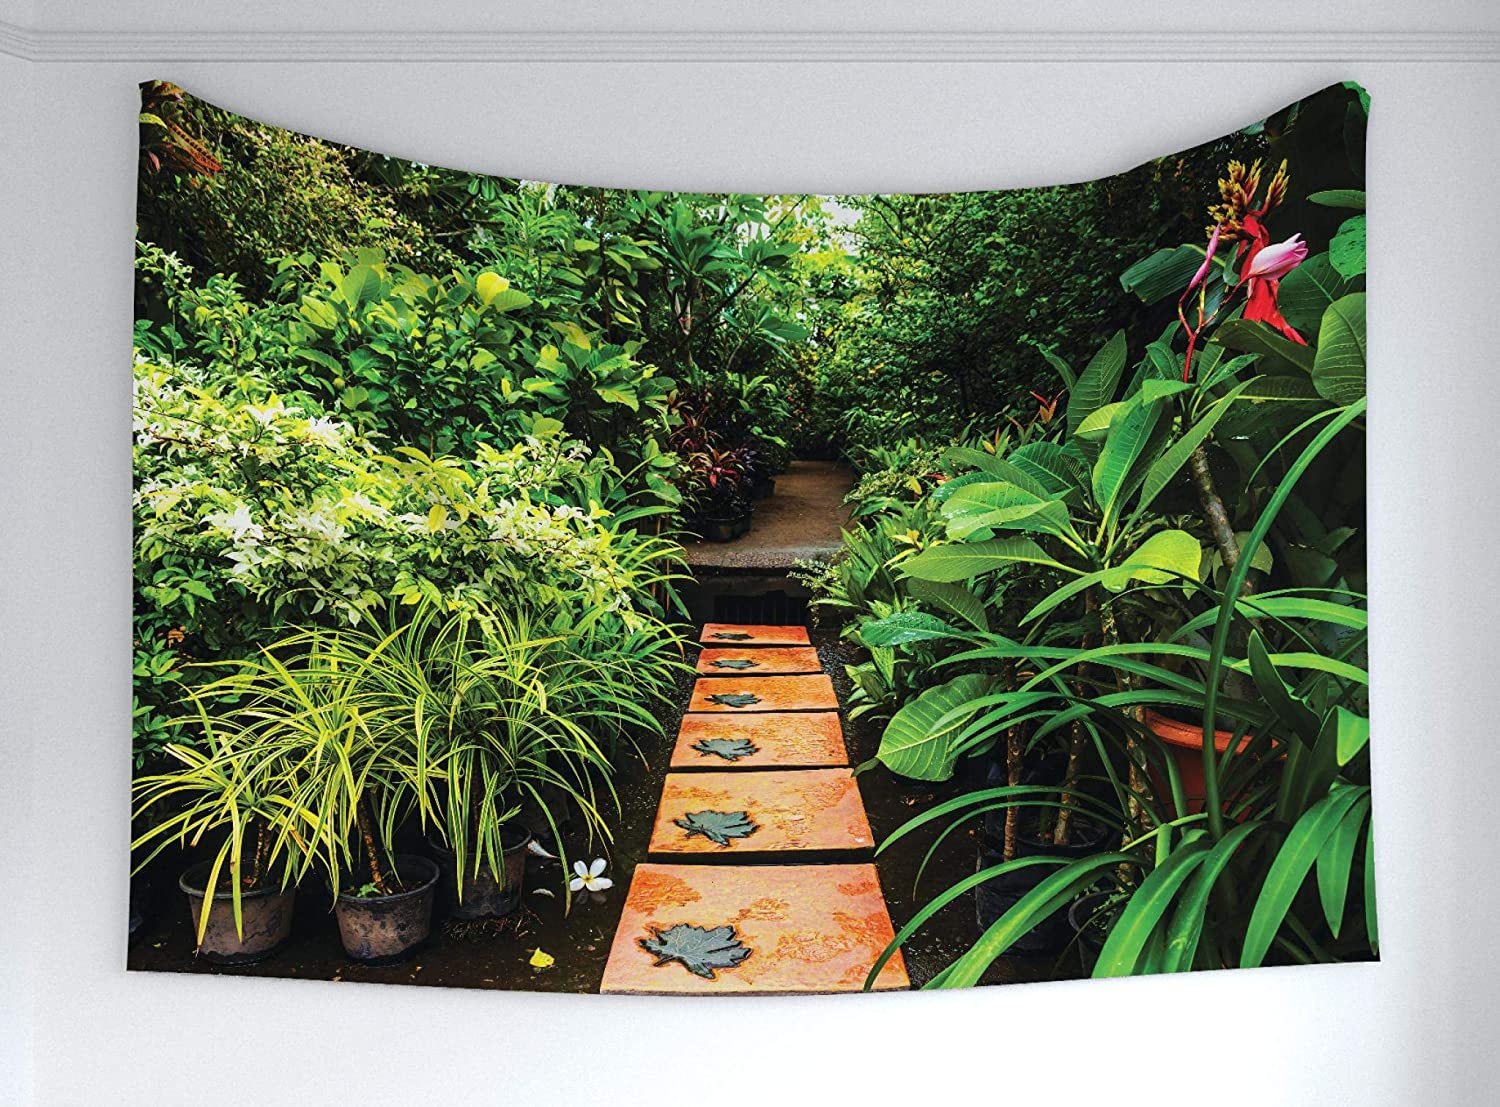 """Ambesonne Peace Garden Tapestry, Garden with Tropical Plants and Wooden Path Tranquility Harmony Theme, Fabric Wall Hanging Decor for Bedroom Living Room Dorm, 90"""" X 60"""", Brown Green"""